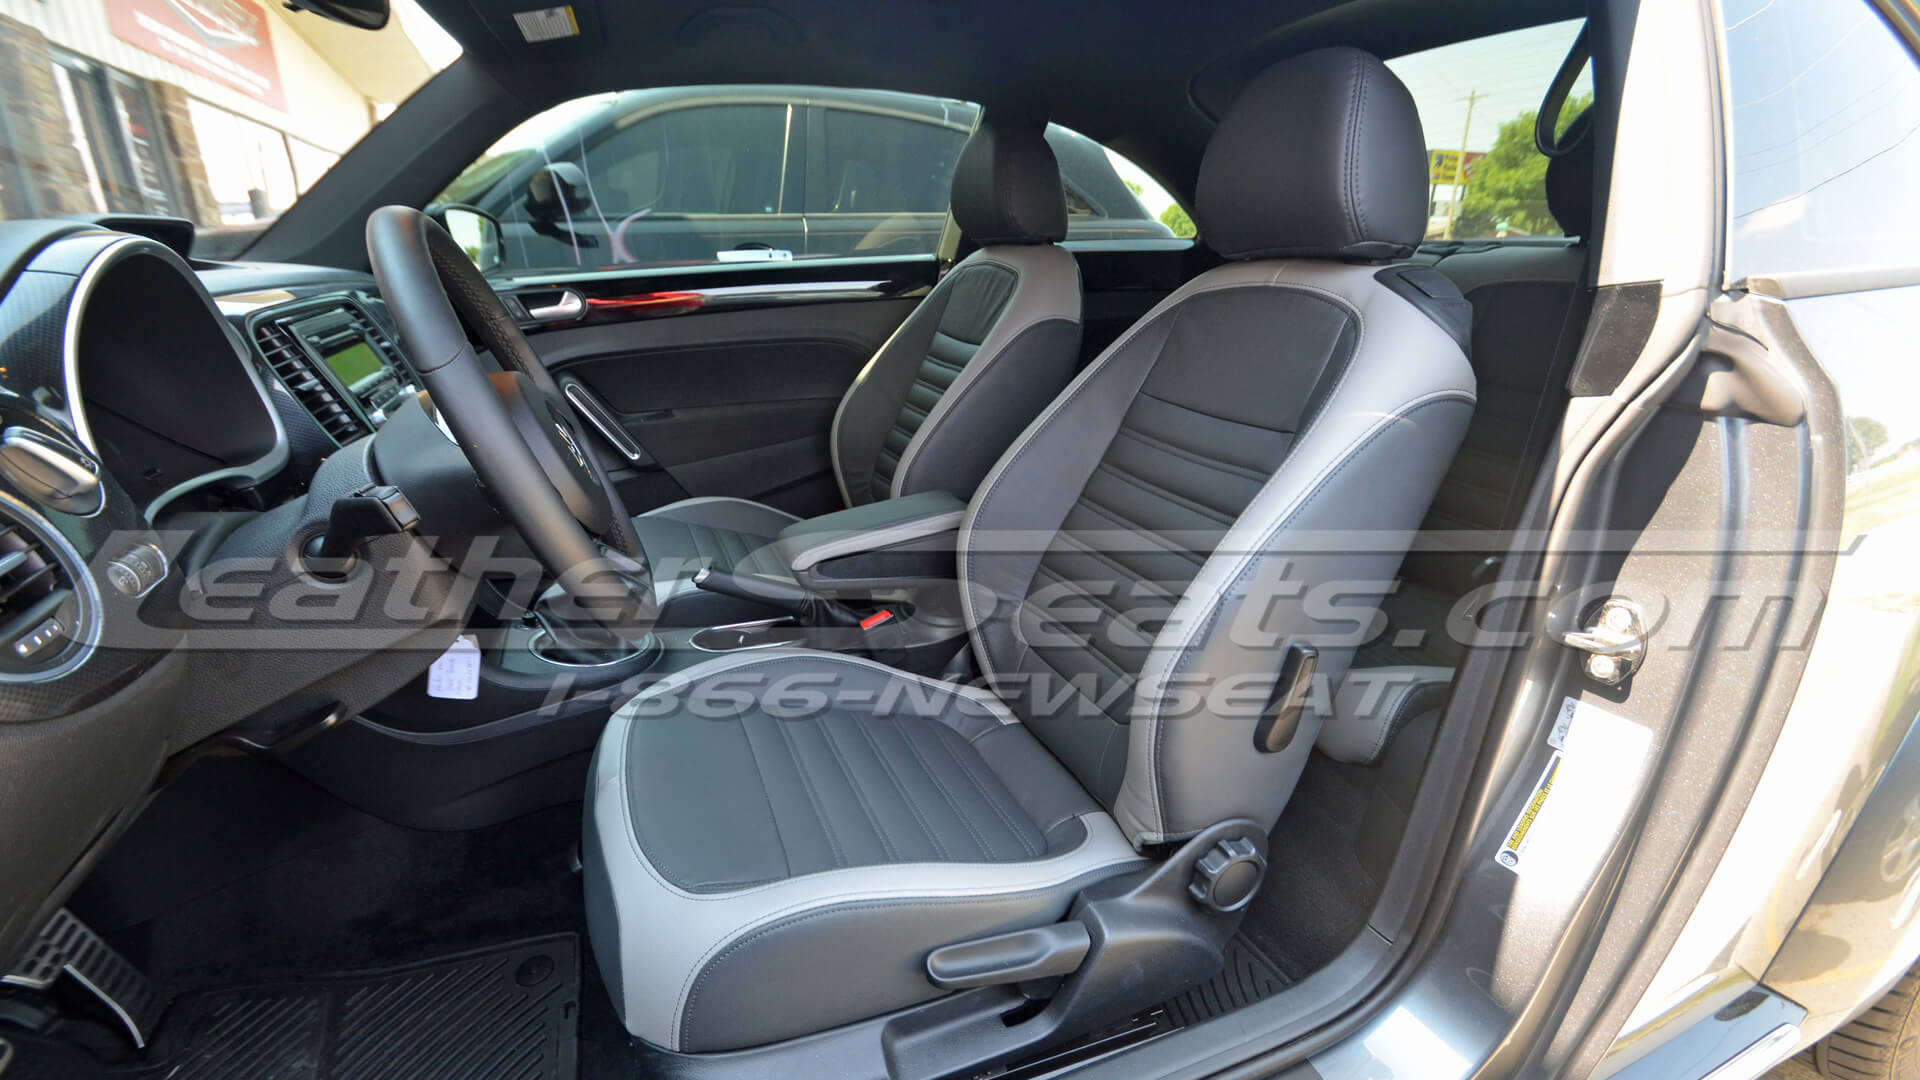 2012 Volkswagen Beetle custom interior - Graphite and Ash - Front driver seat